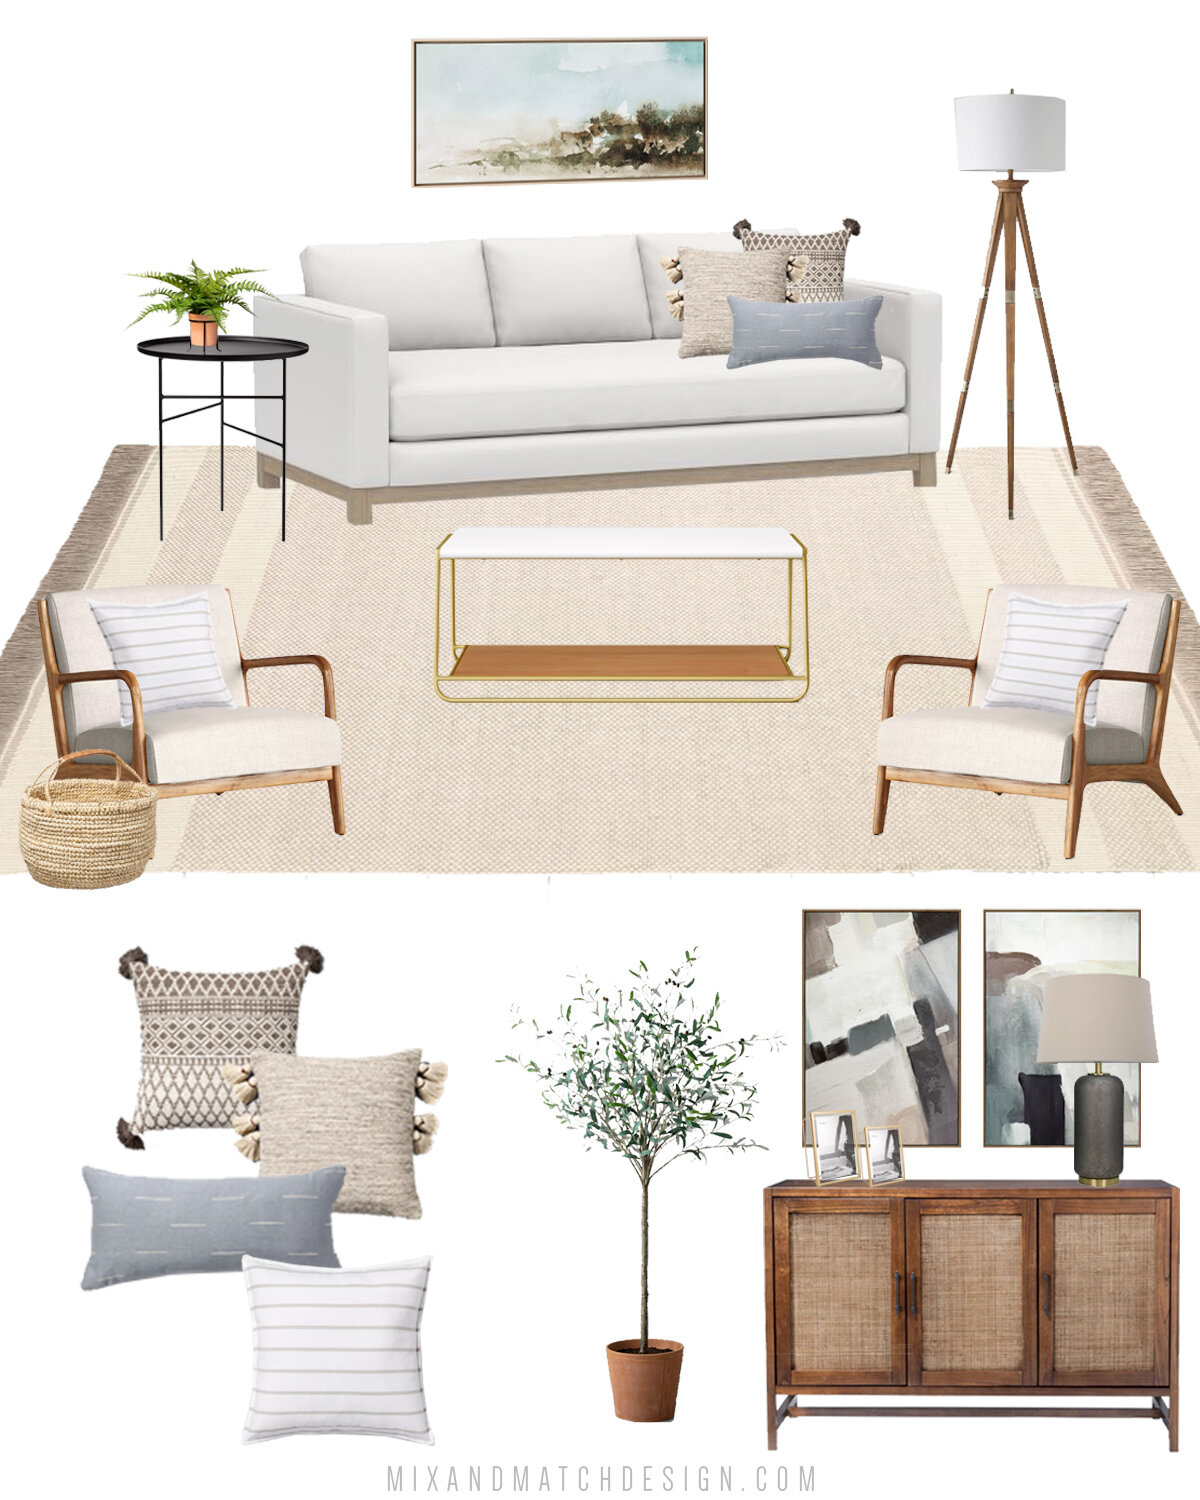 Shop The Design Neutral Clean Coastal Living Room From